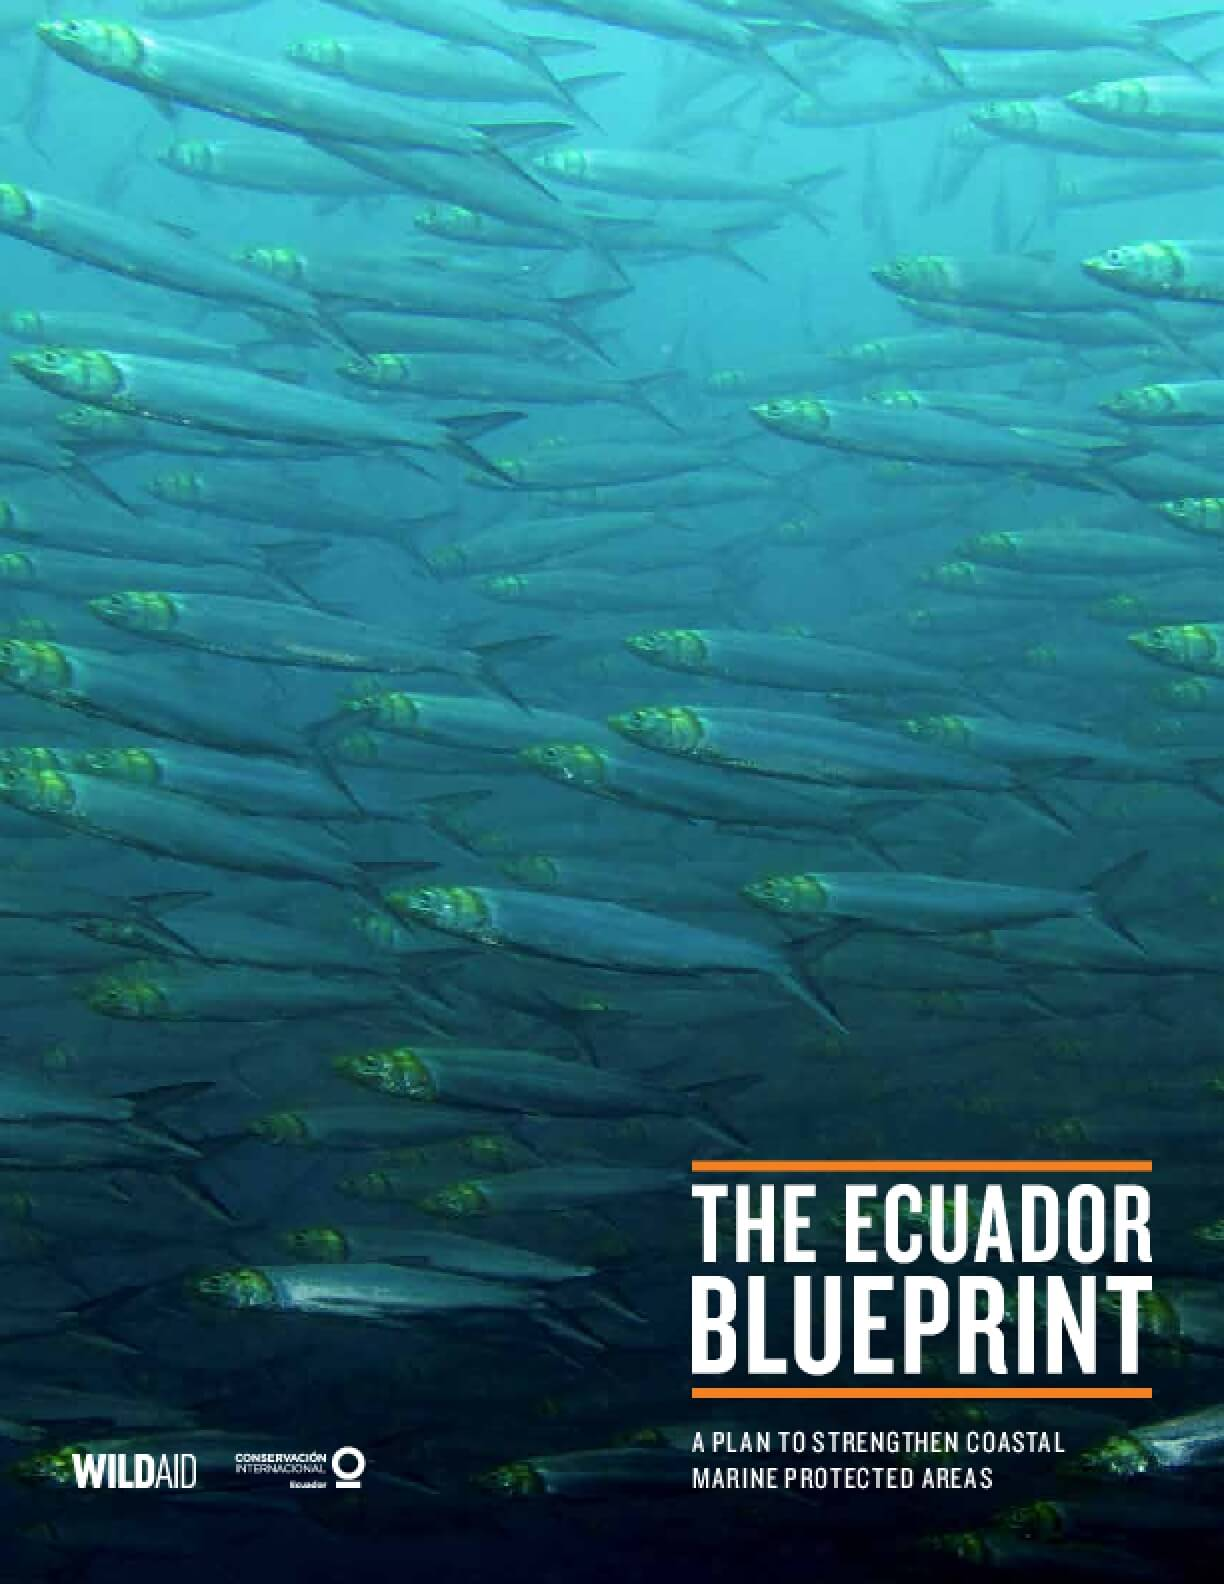 The Ecuador Blueprint: A Plan to Strengthen Coastal Marine Protected Areas